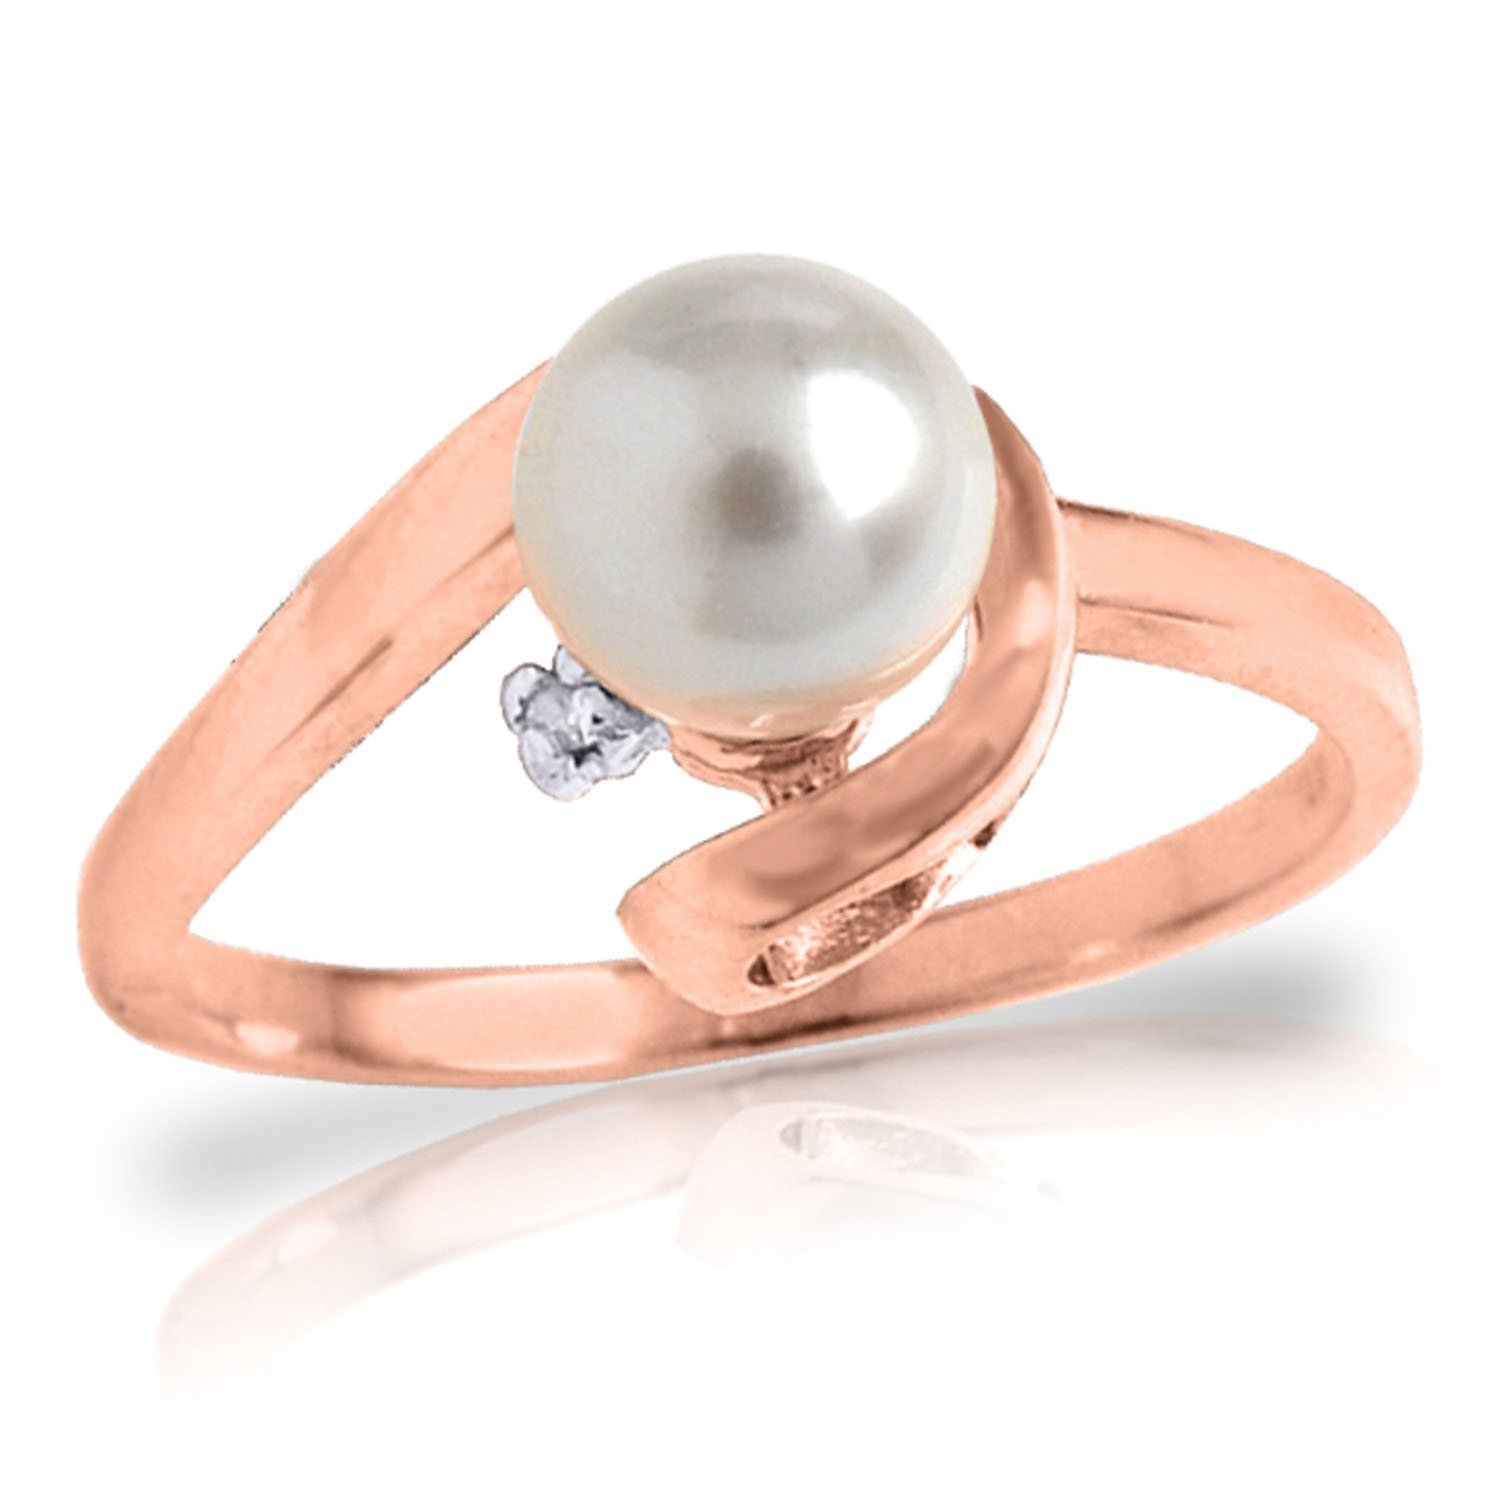 1.01 Carat 14k Solid Rose Gold Ring with Natural Diamond and Freshwater-cultured Pearl - Size 6